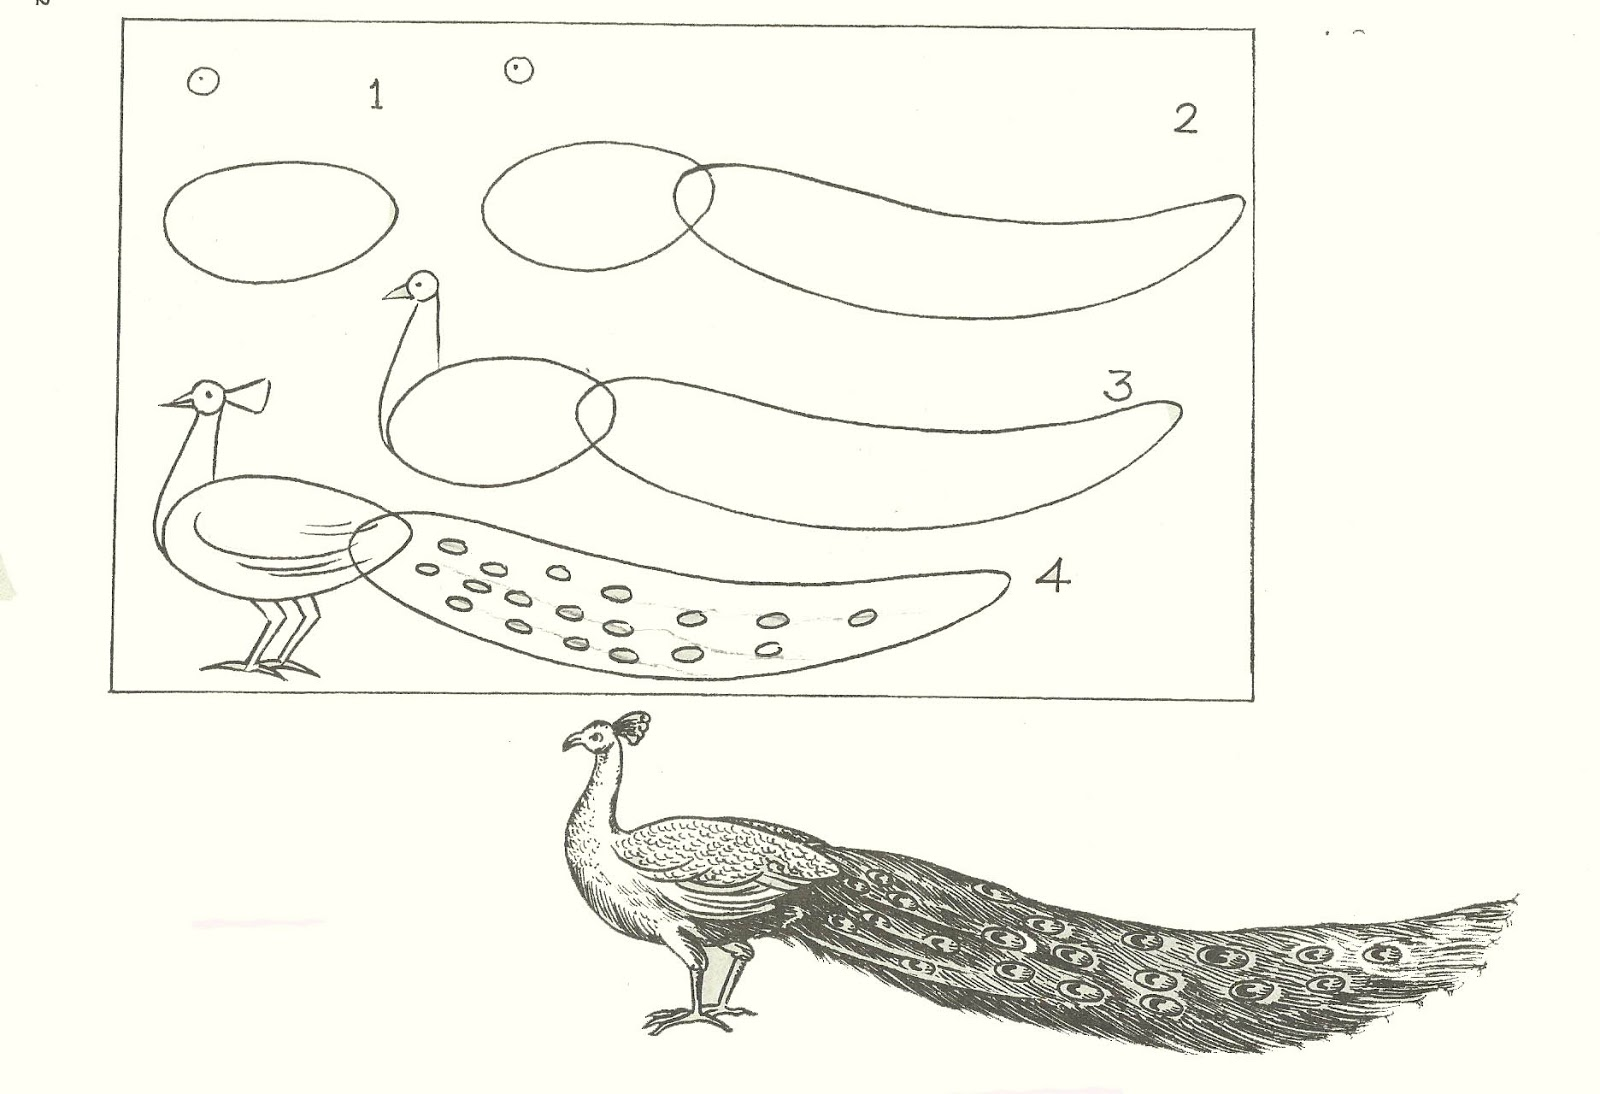 Studentsdrawing: ANIMAL STEP BY STEP EASY OUTLINE DRAWING